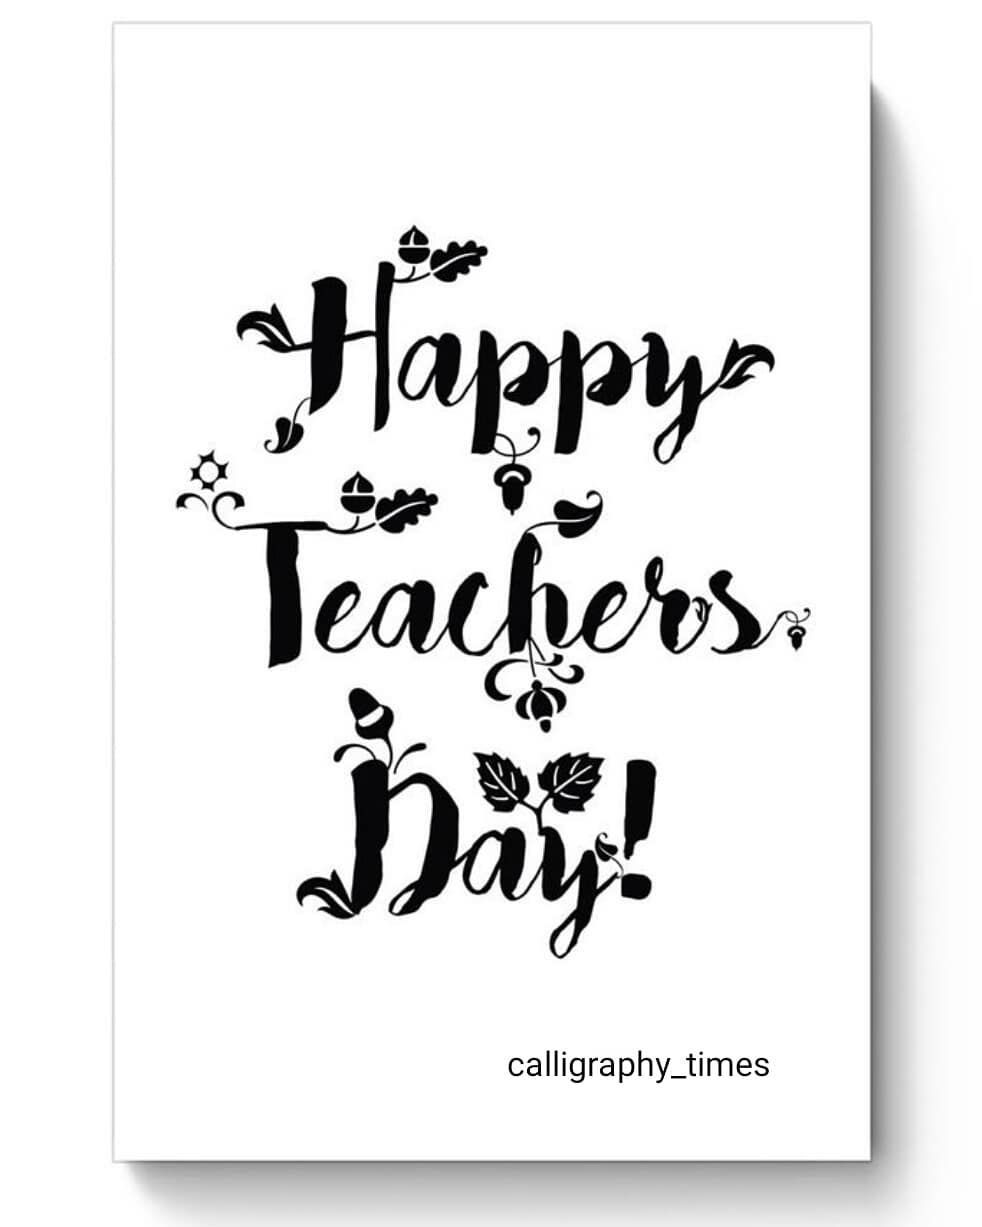 Teachers day special follow to enjoy more sketch and